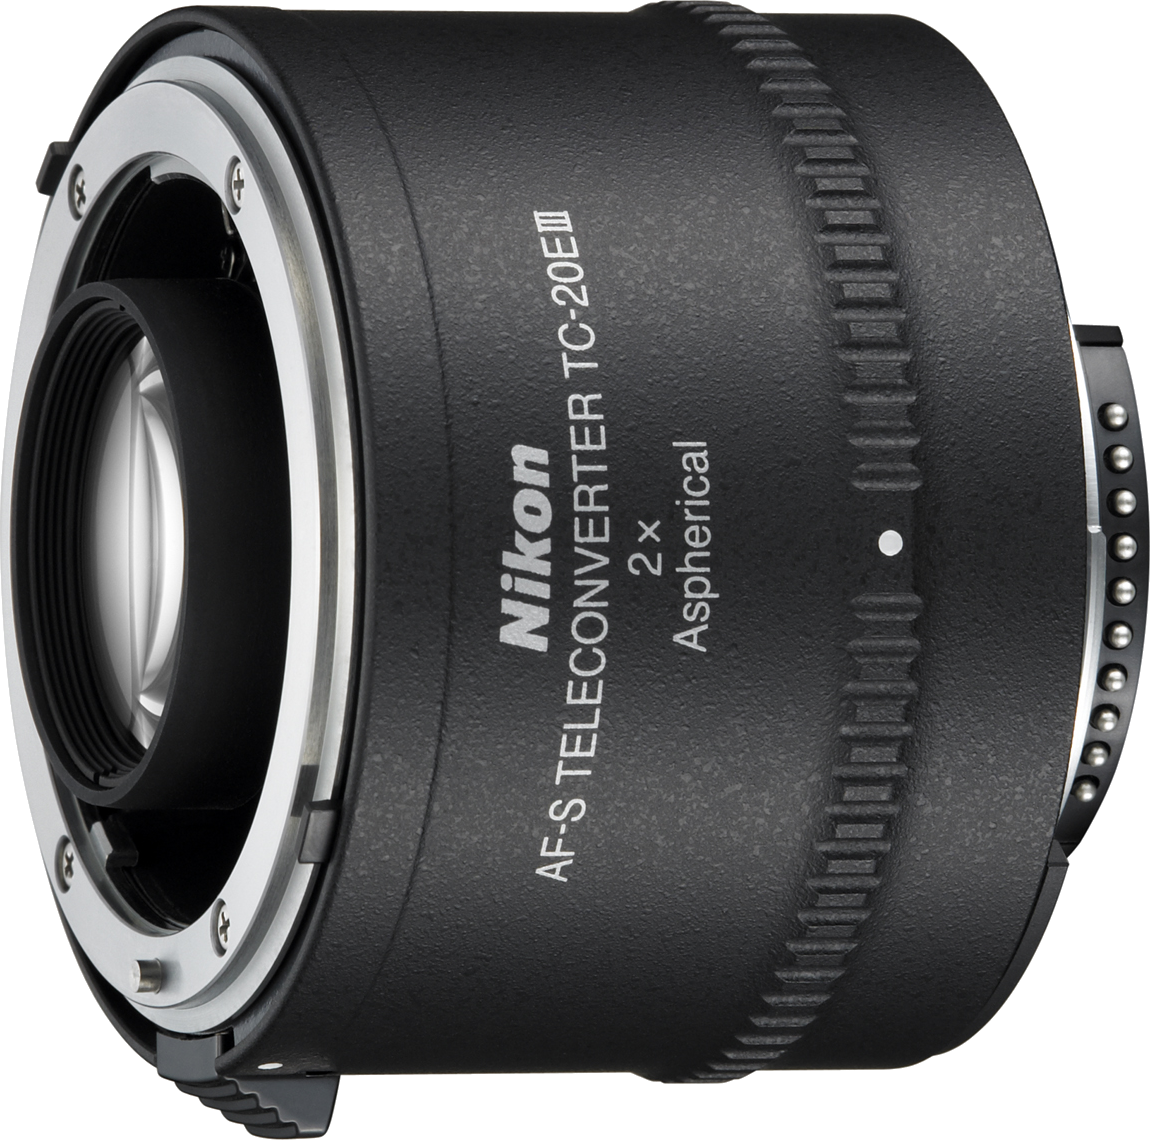 Third version of Nikon's 2x teleconverter.  Please check the compatibility chart before renting.